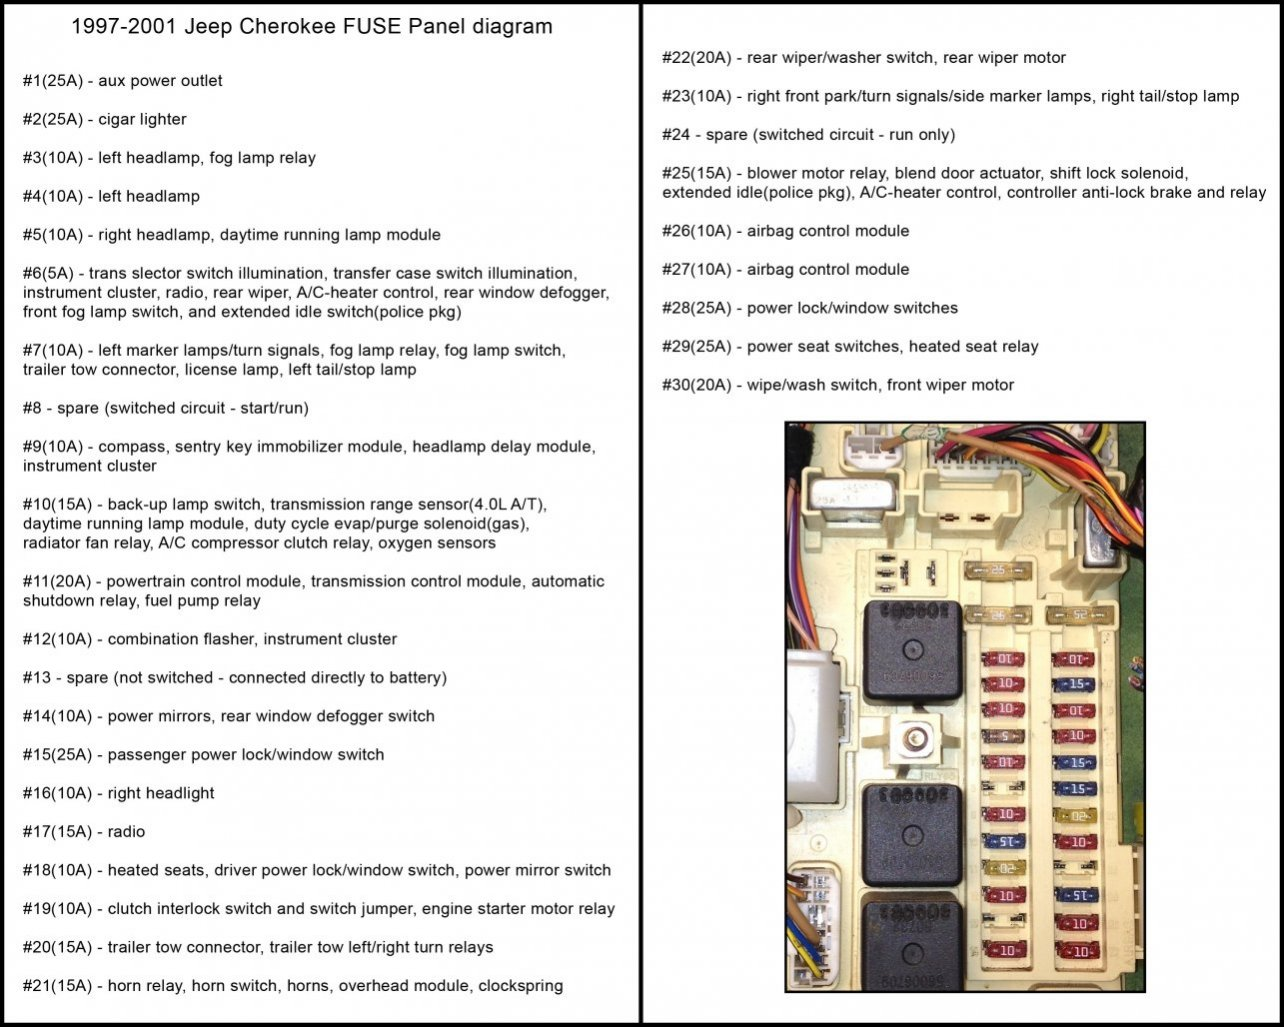 2000 jeep cherokee sport window wiring diagram msd two step instrument cluster, no working gauges - page 2 forum